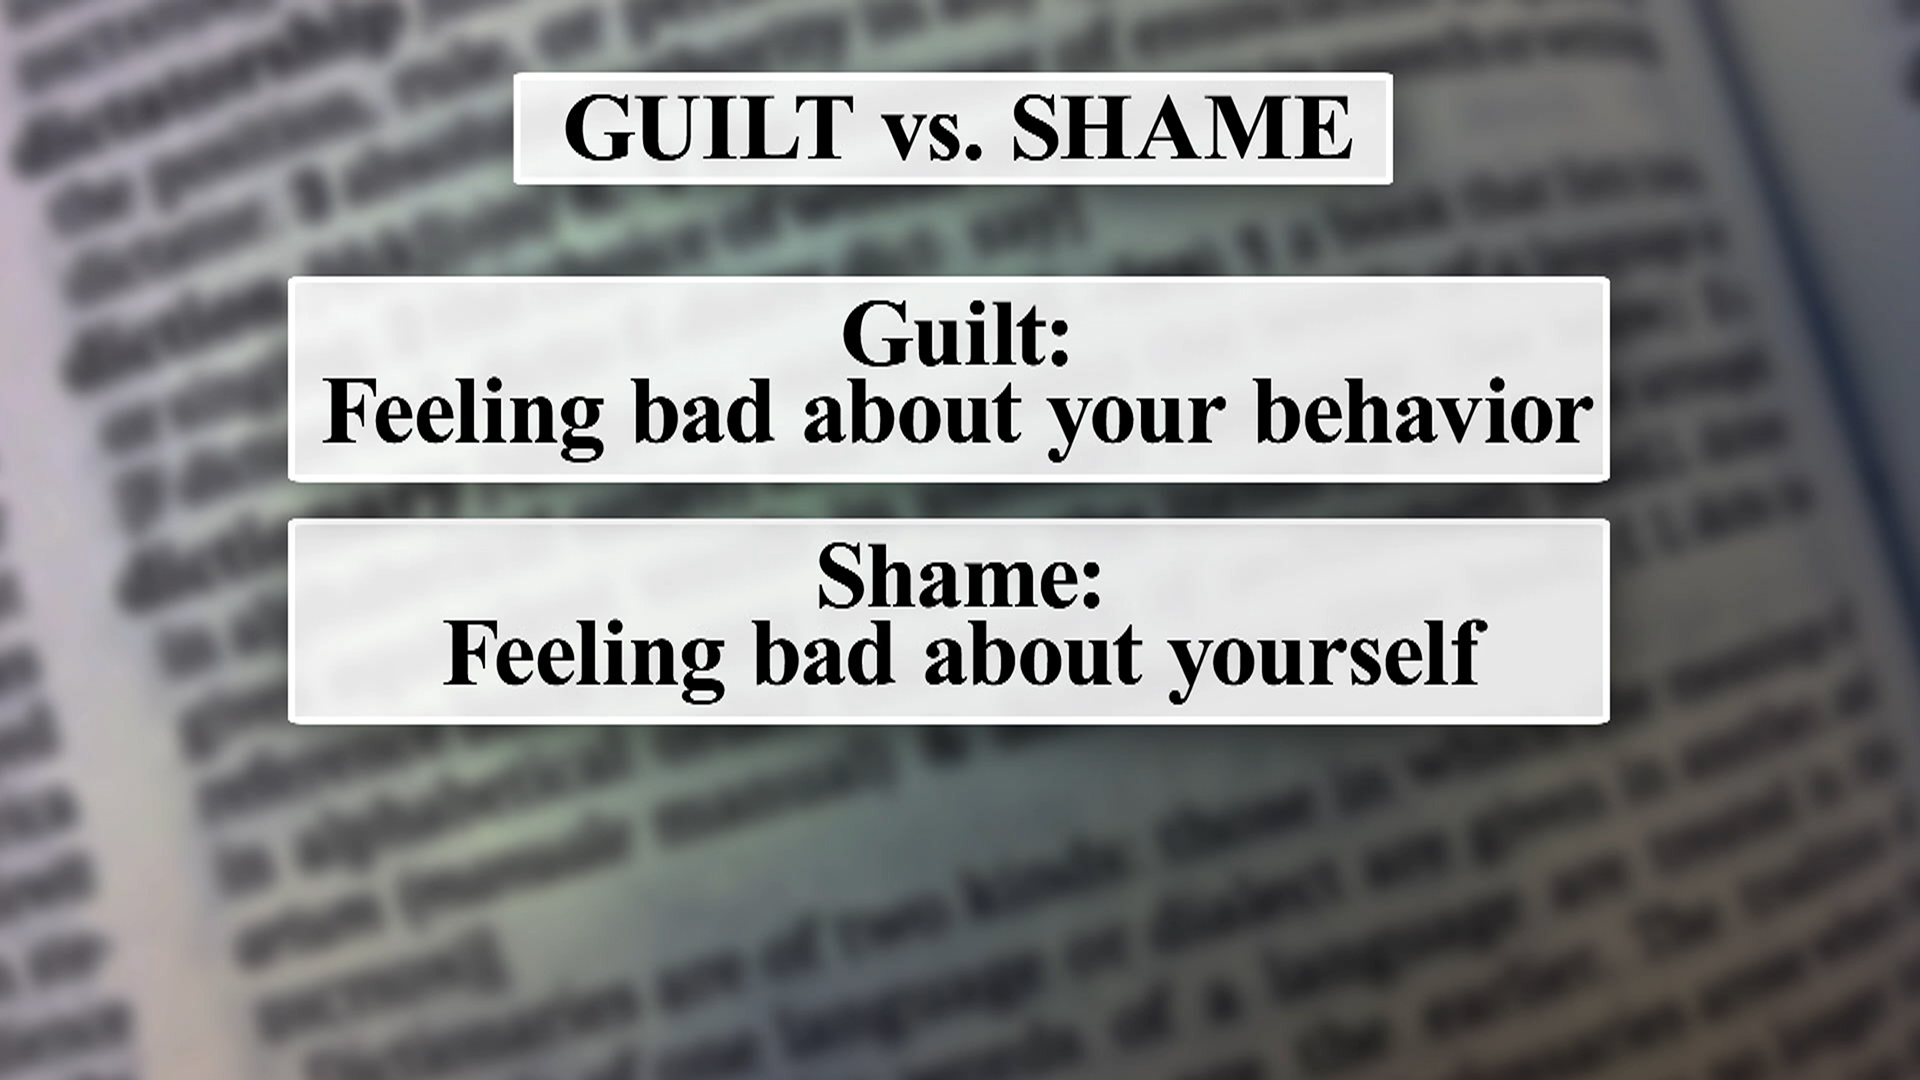 Guilt Vs Shame Wall Street Journal Reports Why One Can